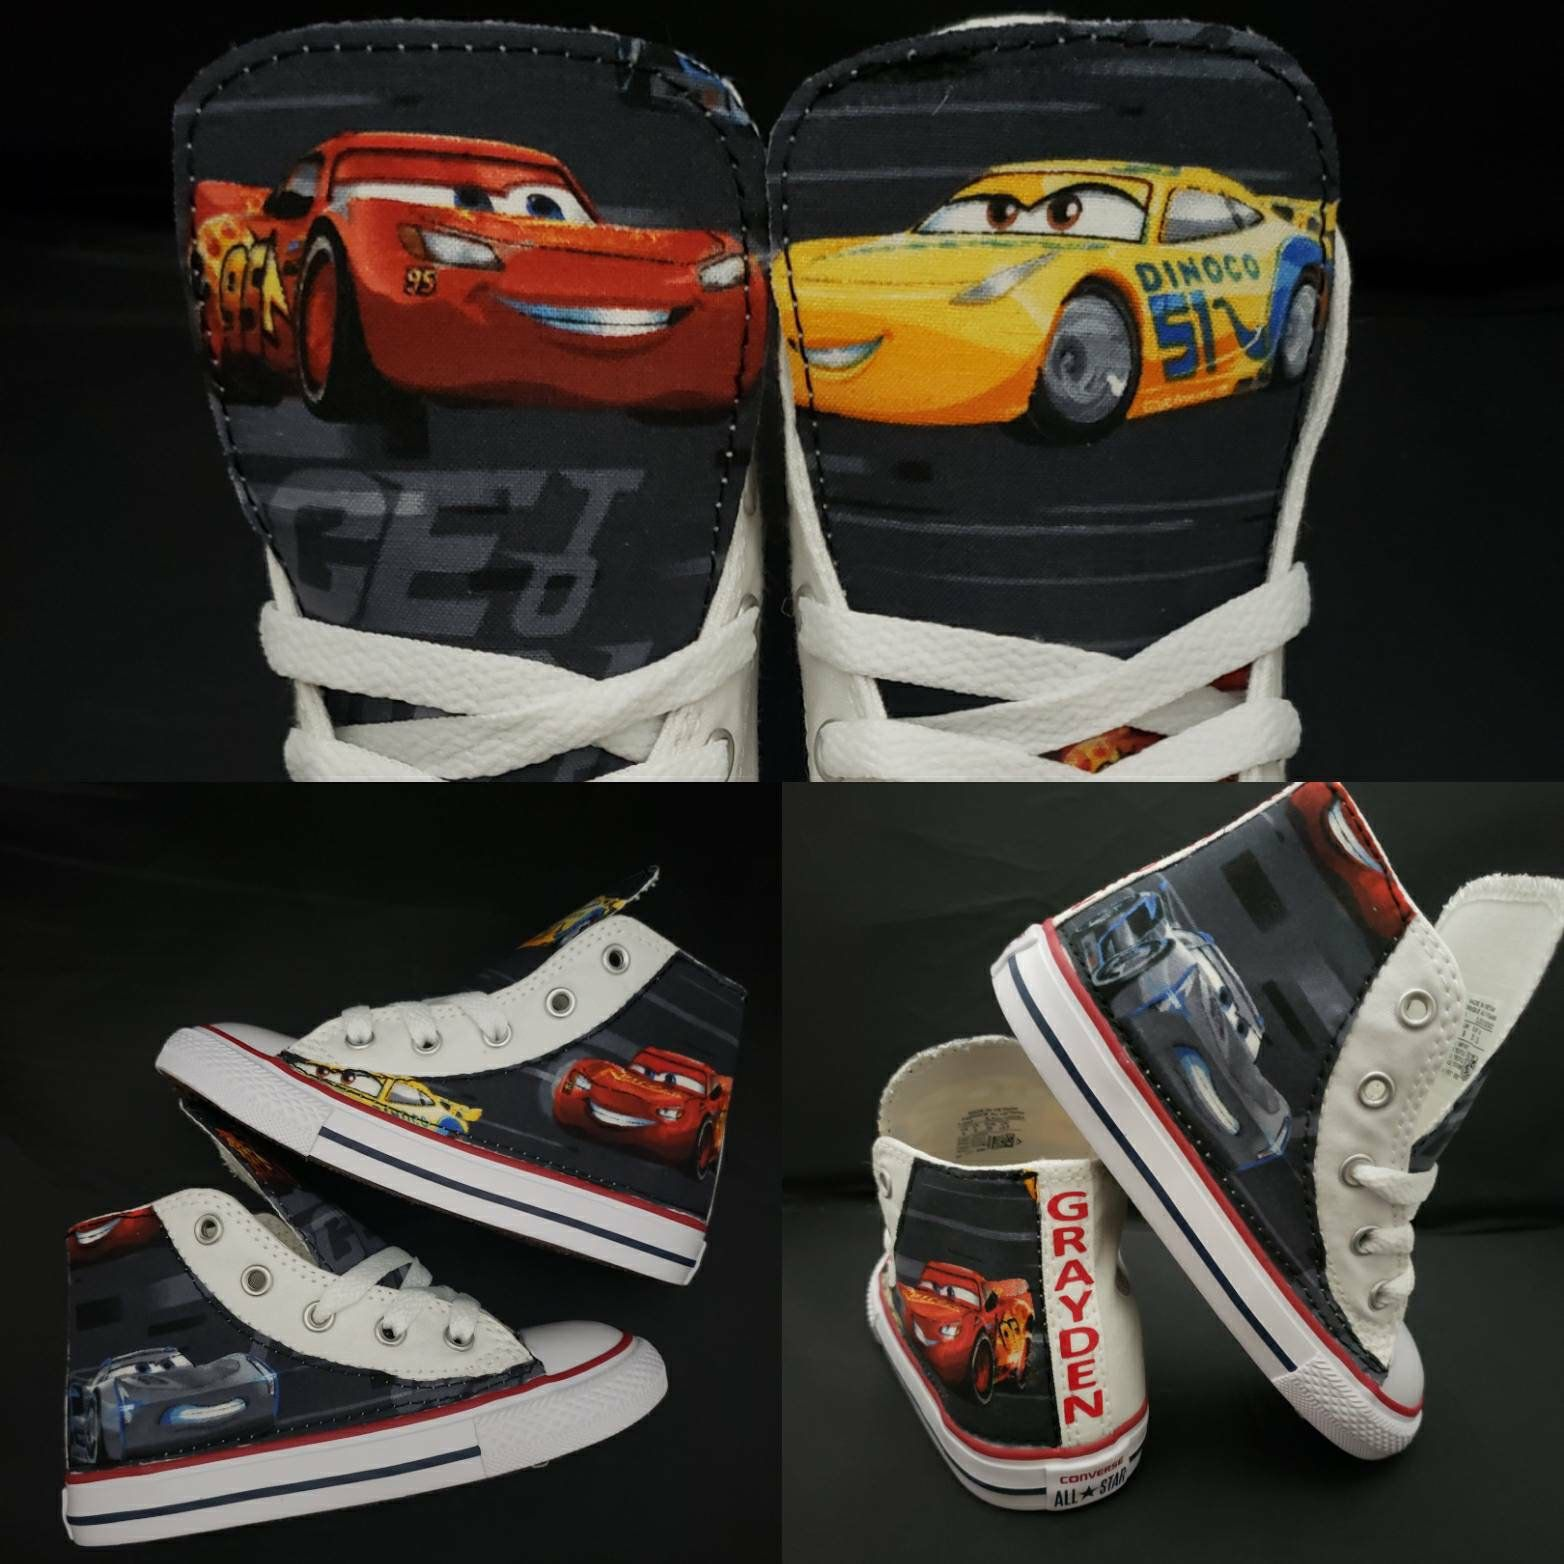 Disney Cars Converse, Cars birthday, lightning McQueen shoes, custom boy shoes, boys party outfit, car sneakers, children by Hallwayzdesigns